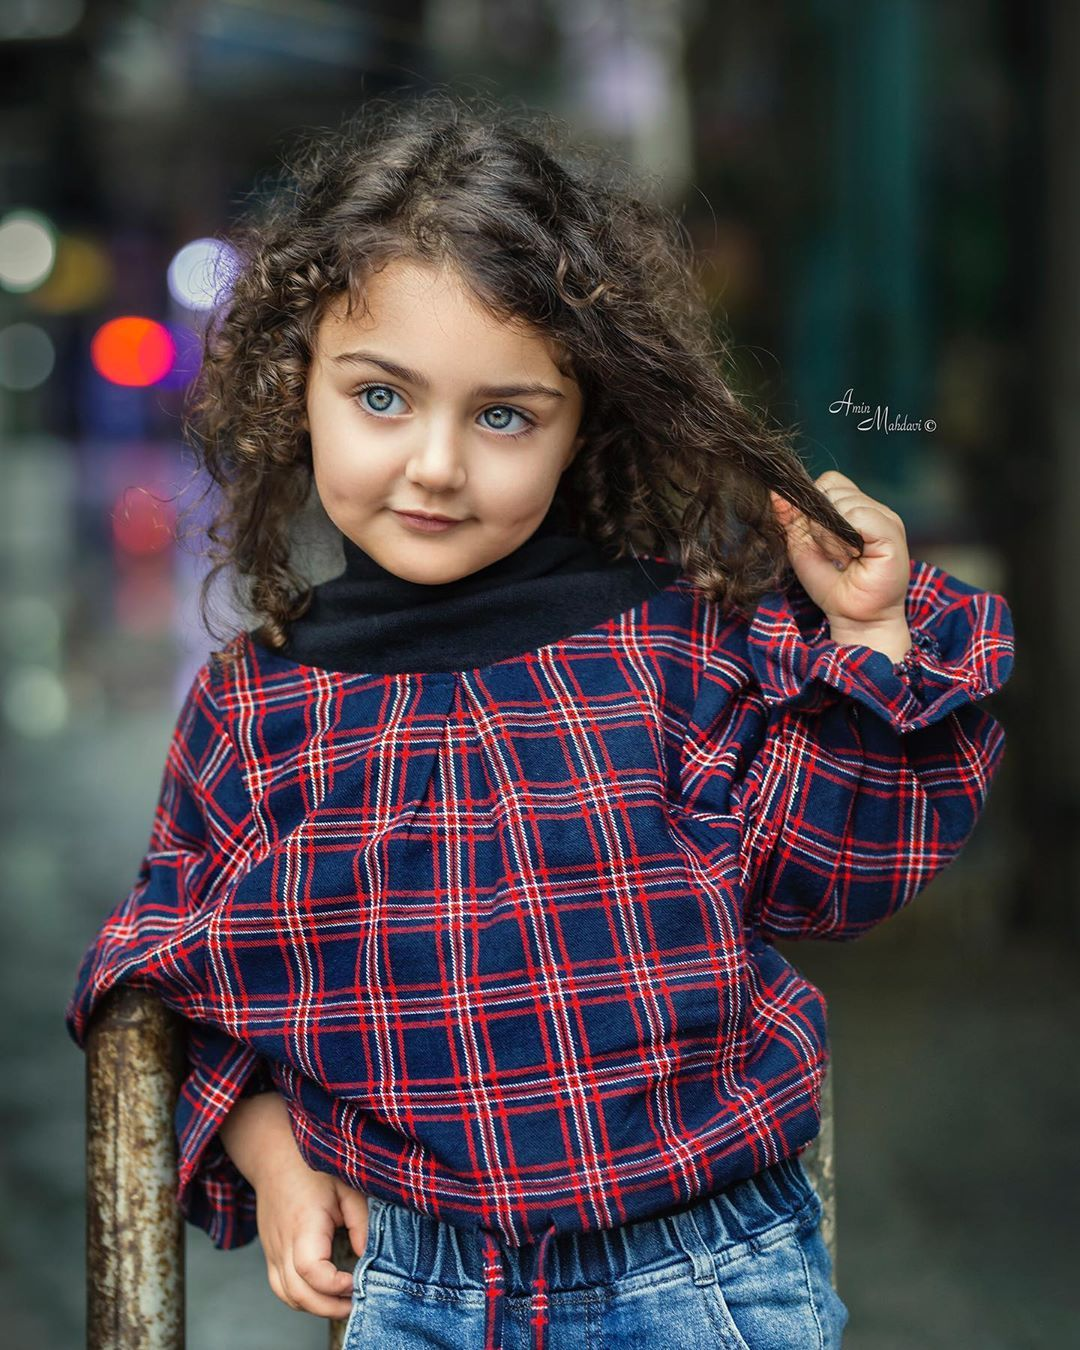 38 9k Likes 515 Comments Anahita Hashemzadeh Annahiita Hashemzadeh On Instagram کوه با نخستی Baby Girl Images World S Cutest Baby Cute Baby Girl Images